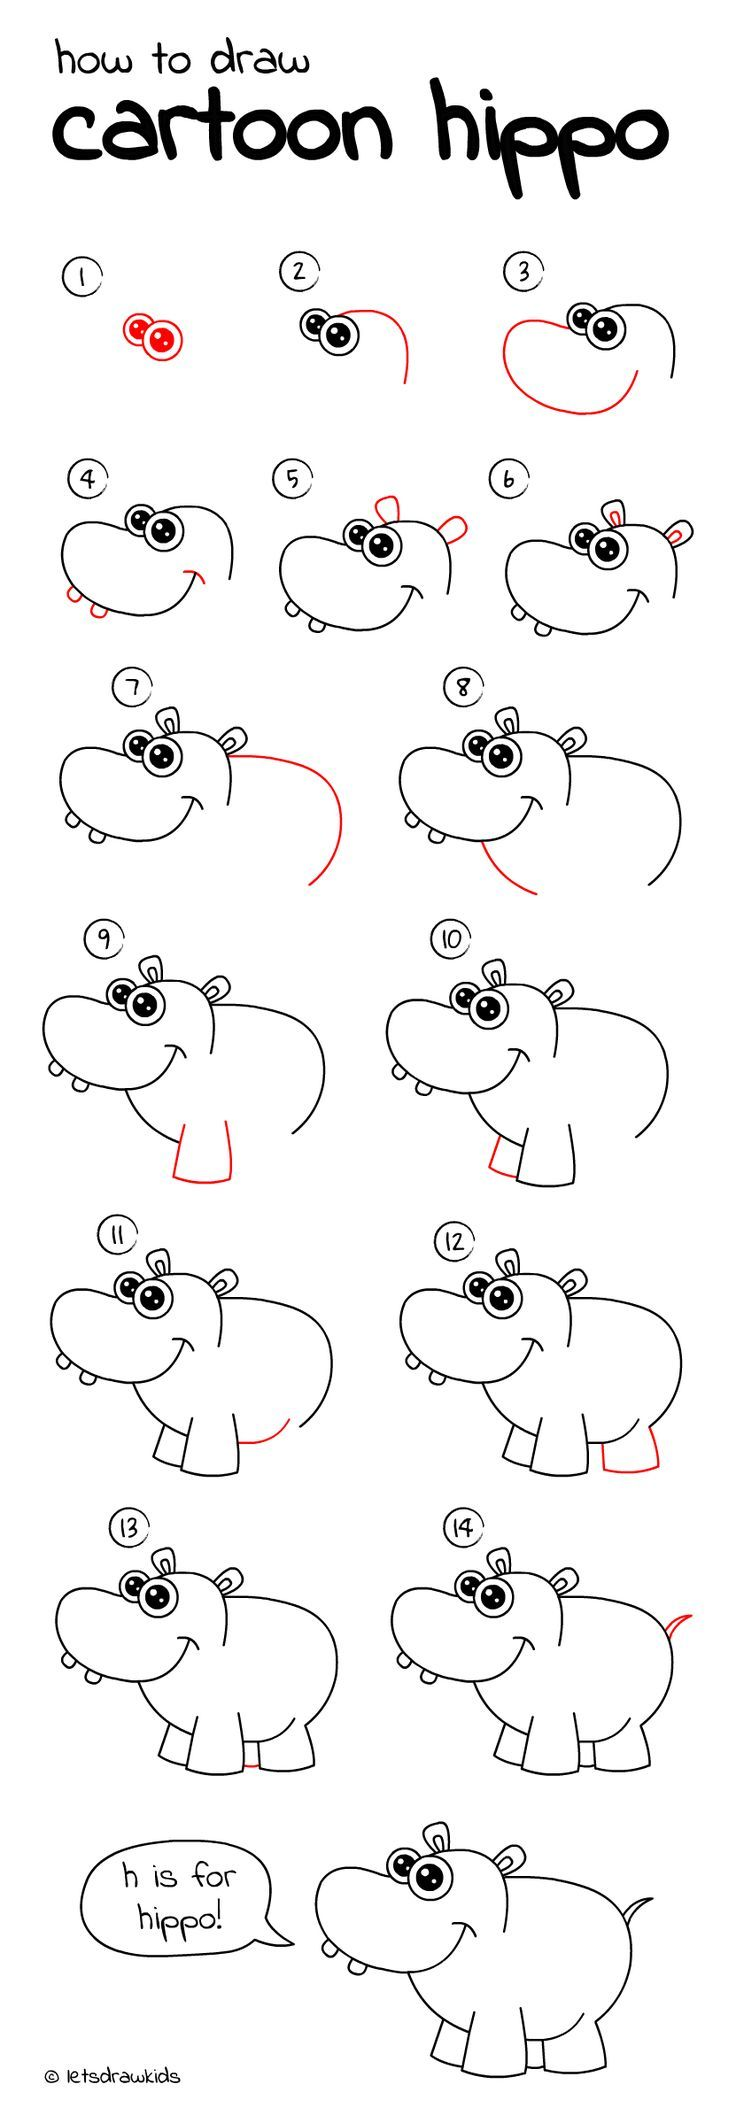 how to draw cartoon hippo easy drawing step by step perfect for kids